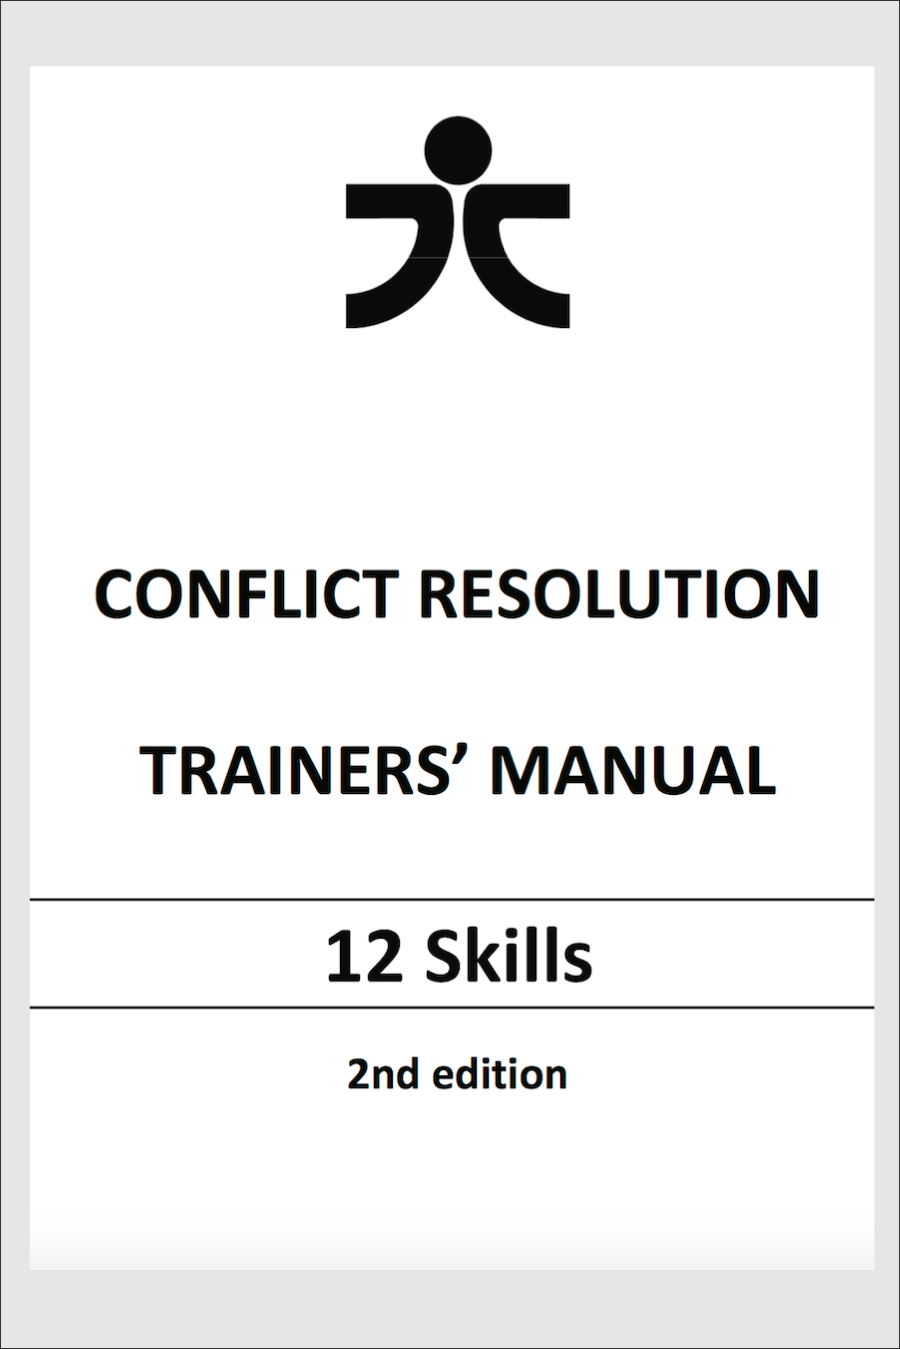 conflict resolution trainers manual 12 skills